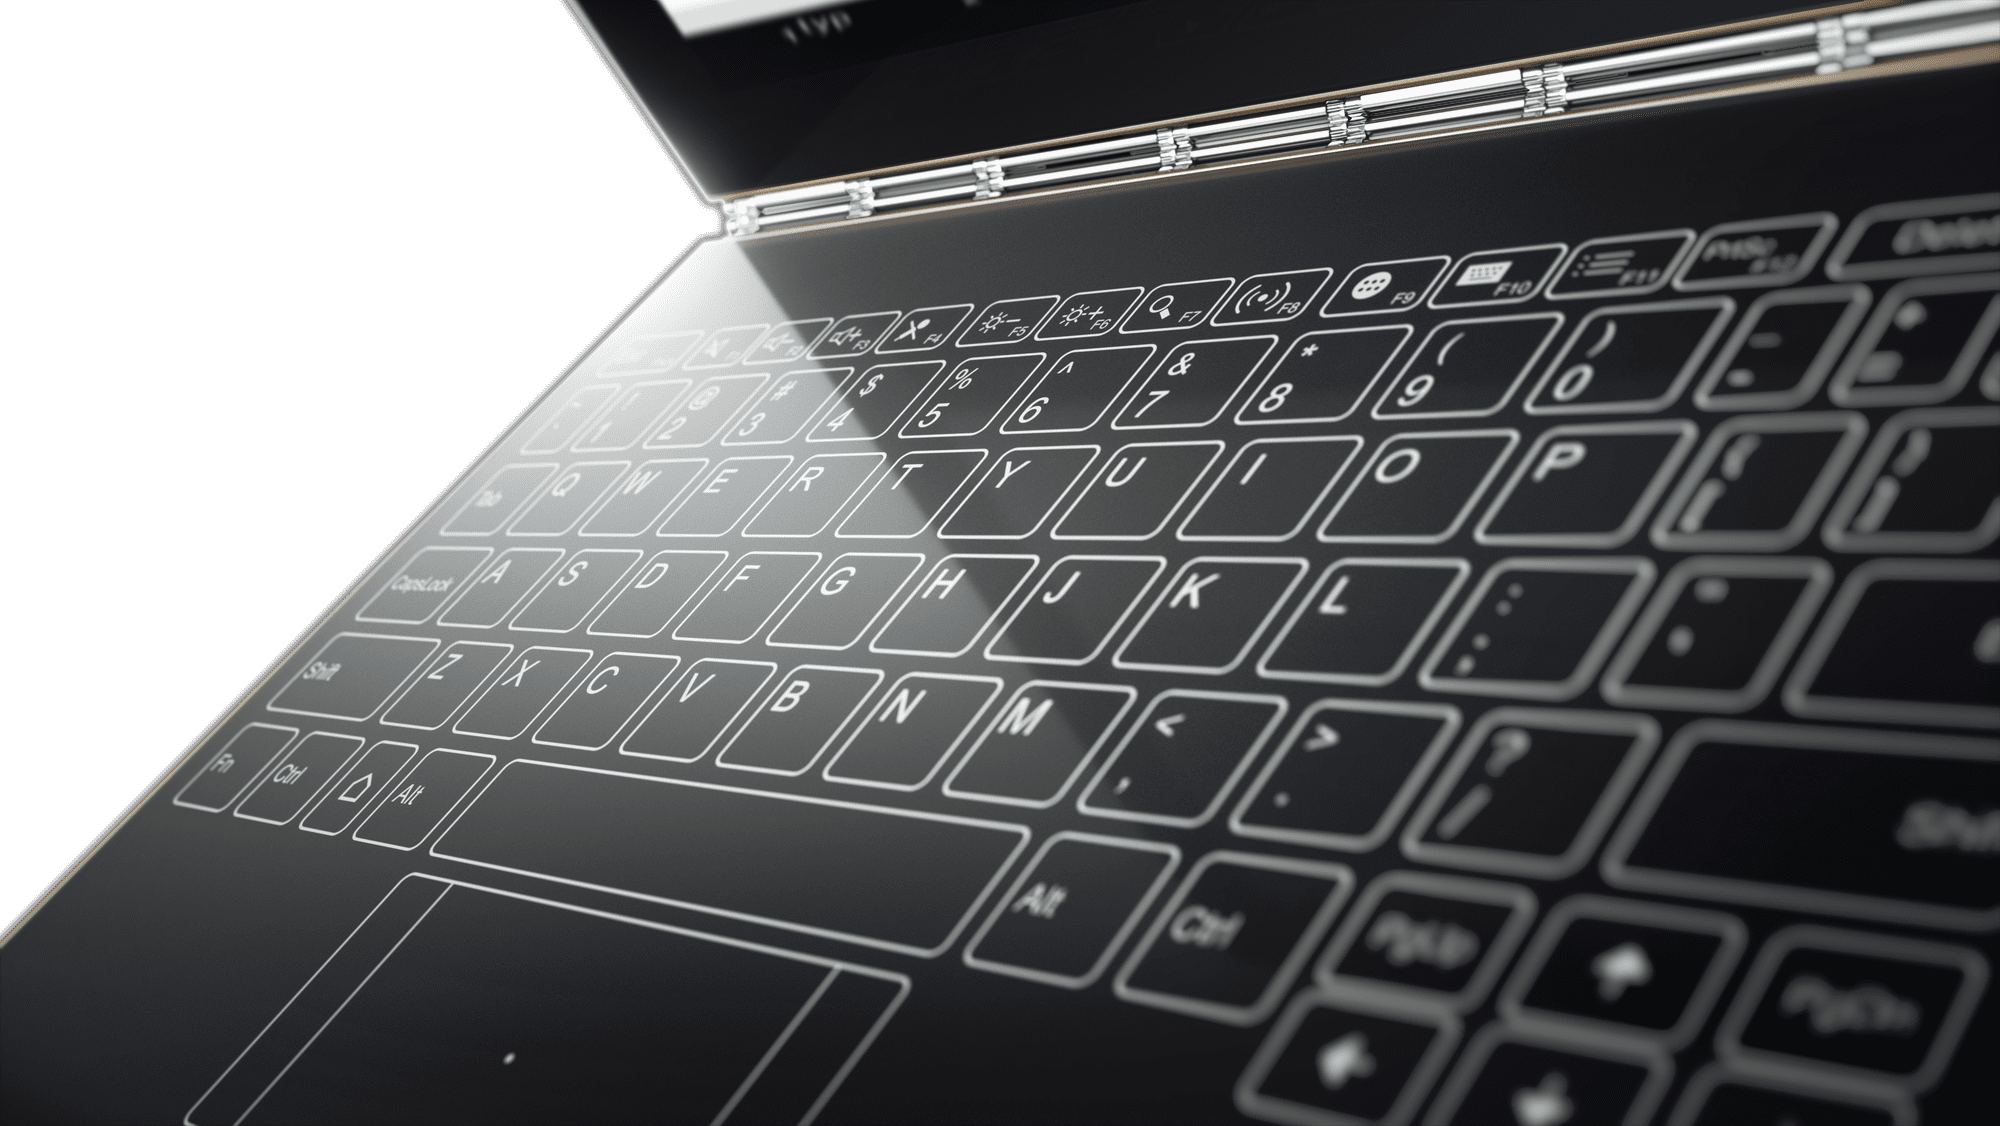 Lenovo launches Yoga Book: A tablet with touch keyboard, stylus that